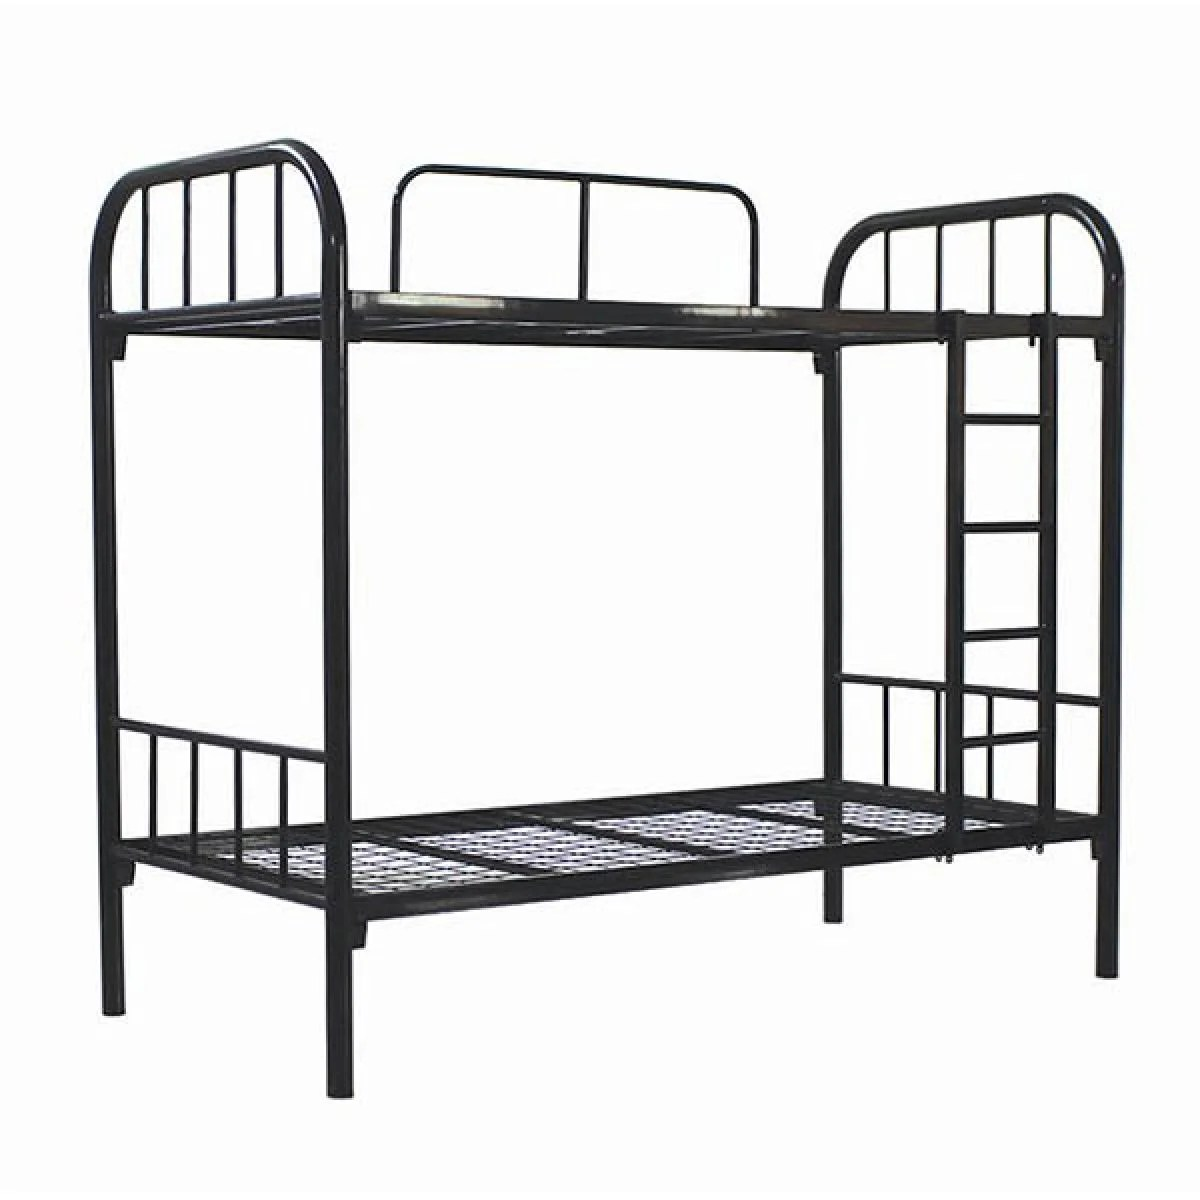 Bunk Beds Safe For Adults Ability Trading In Uae